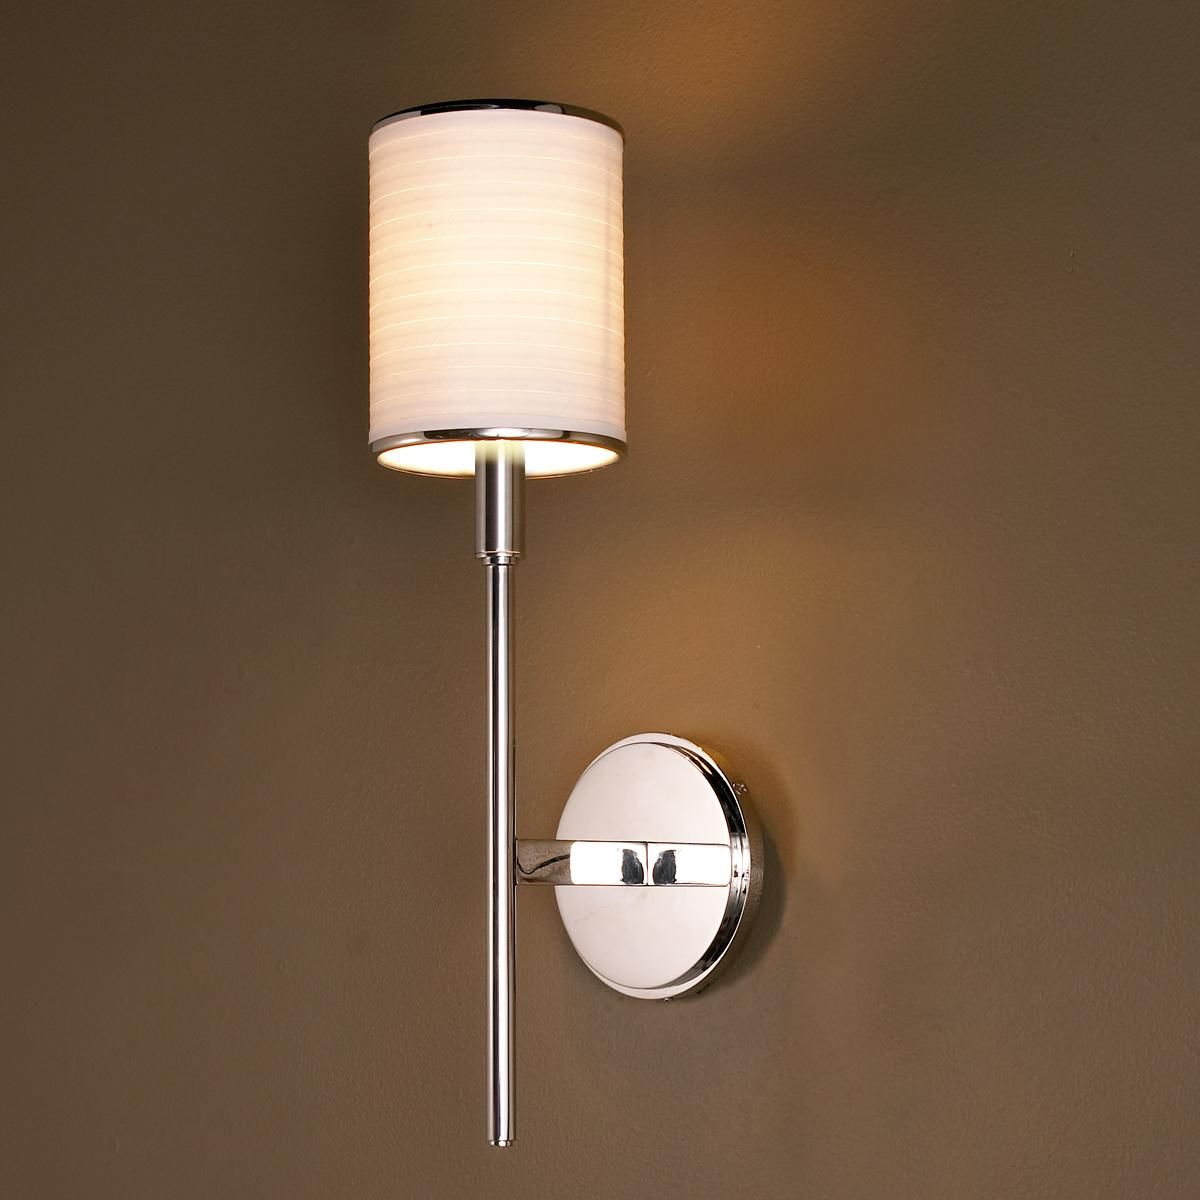 Modern Pencil Arm Sconce 2 Finishes Shades Of Light Sconces Wall Light Shades Sconce Shades